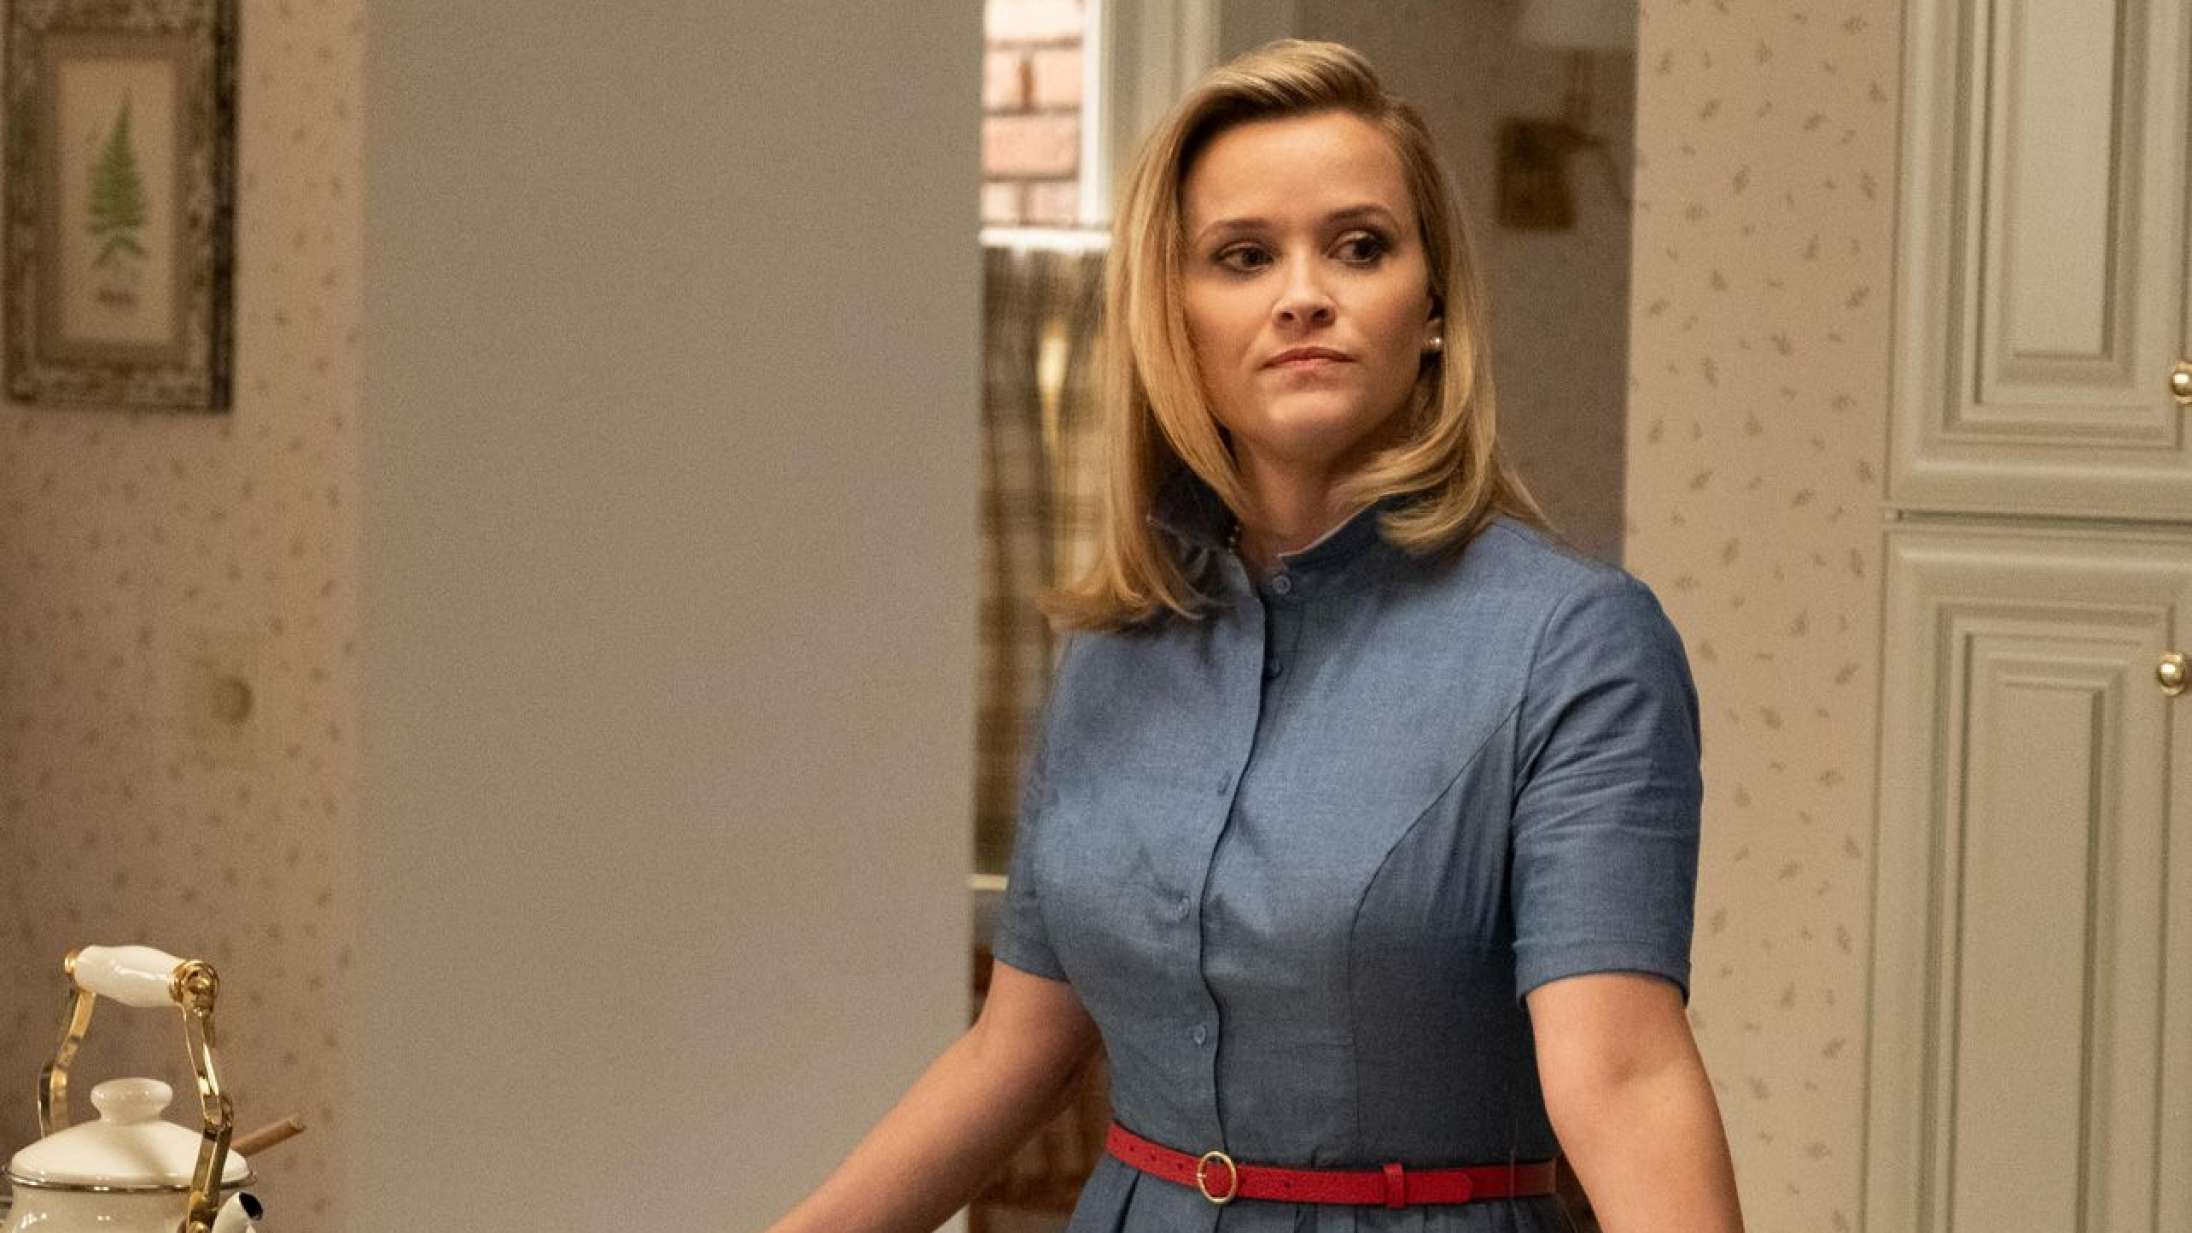 'Little Fires Everywhere': Reese Witherspoon & co. råber om kap i bestseller-serie